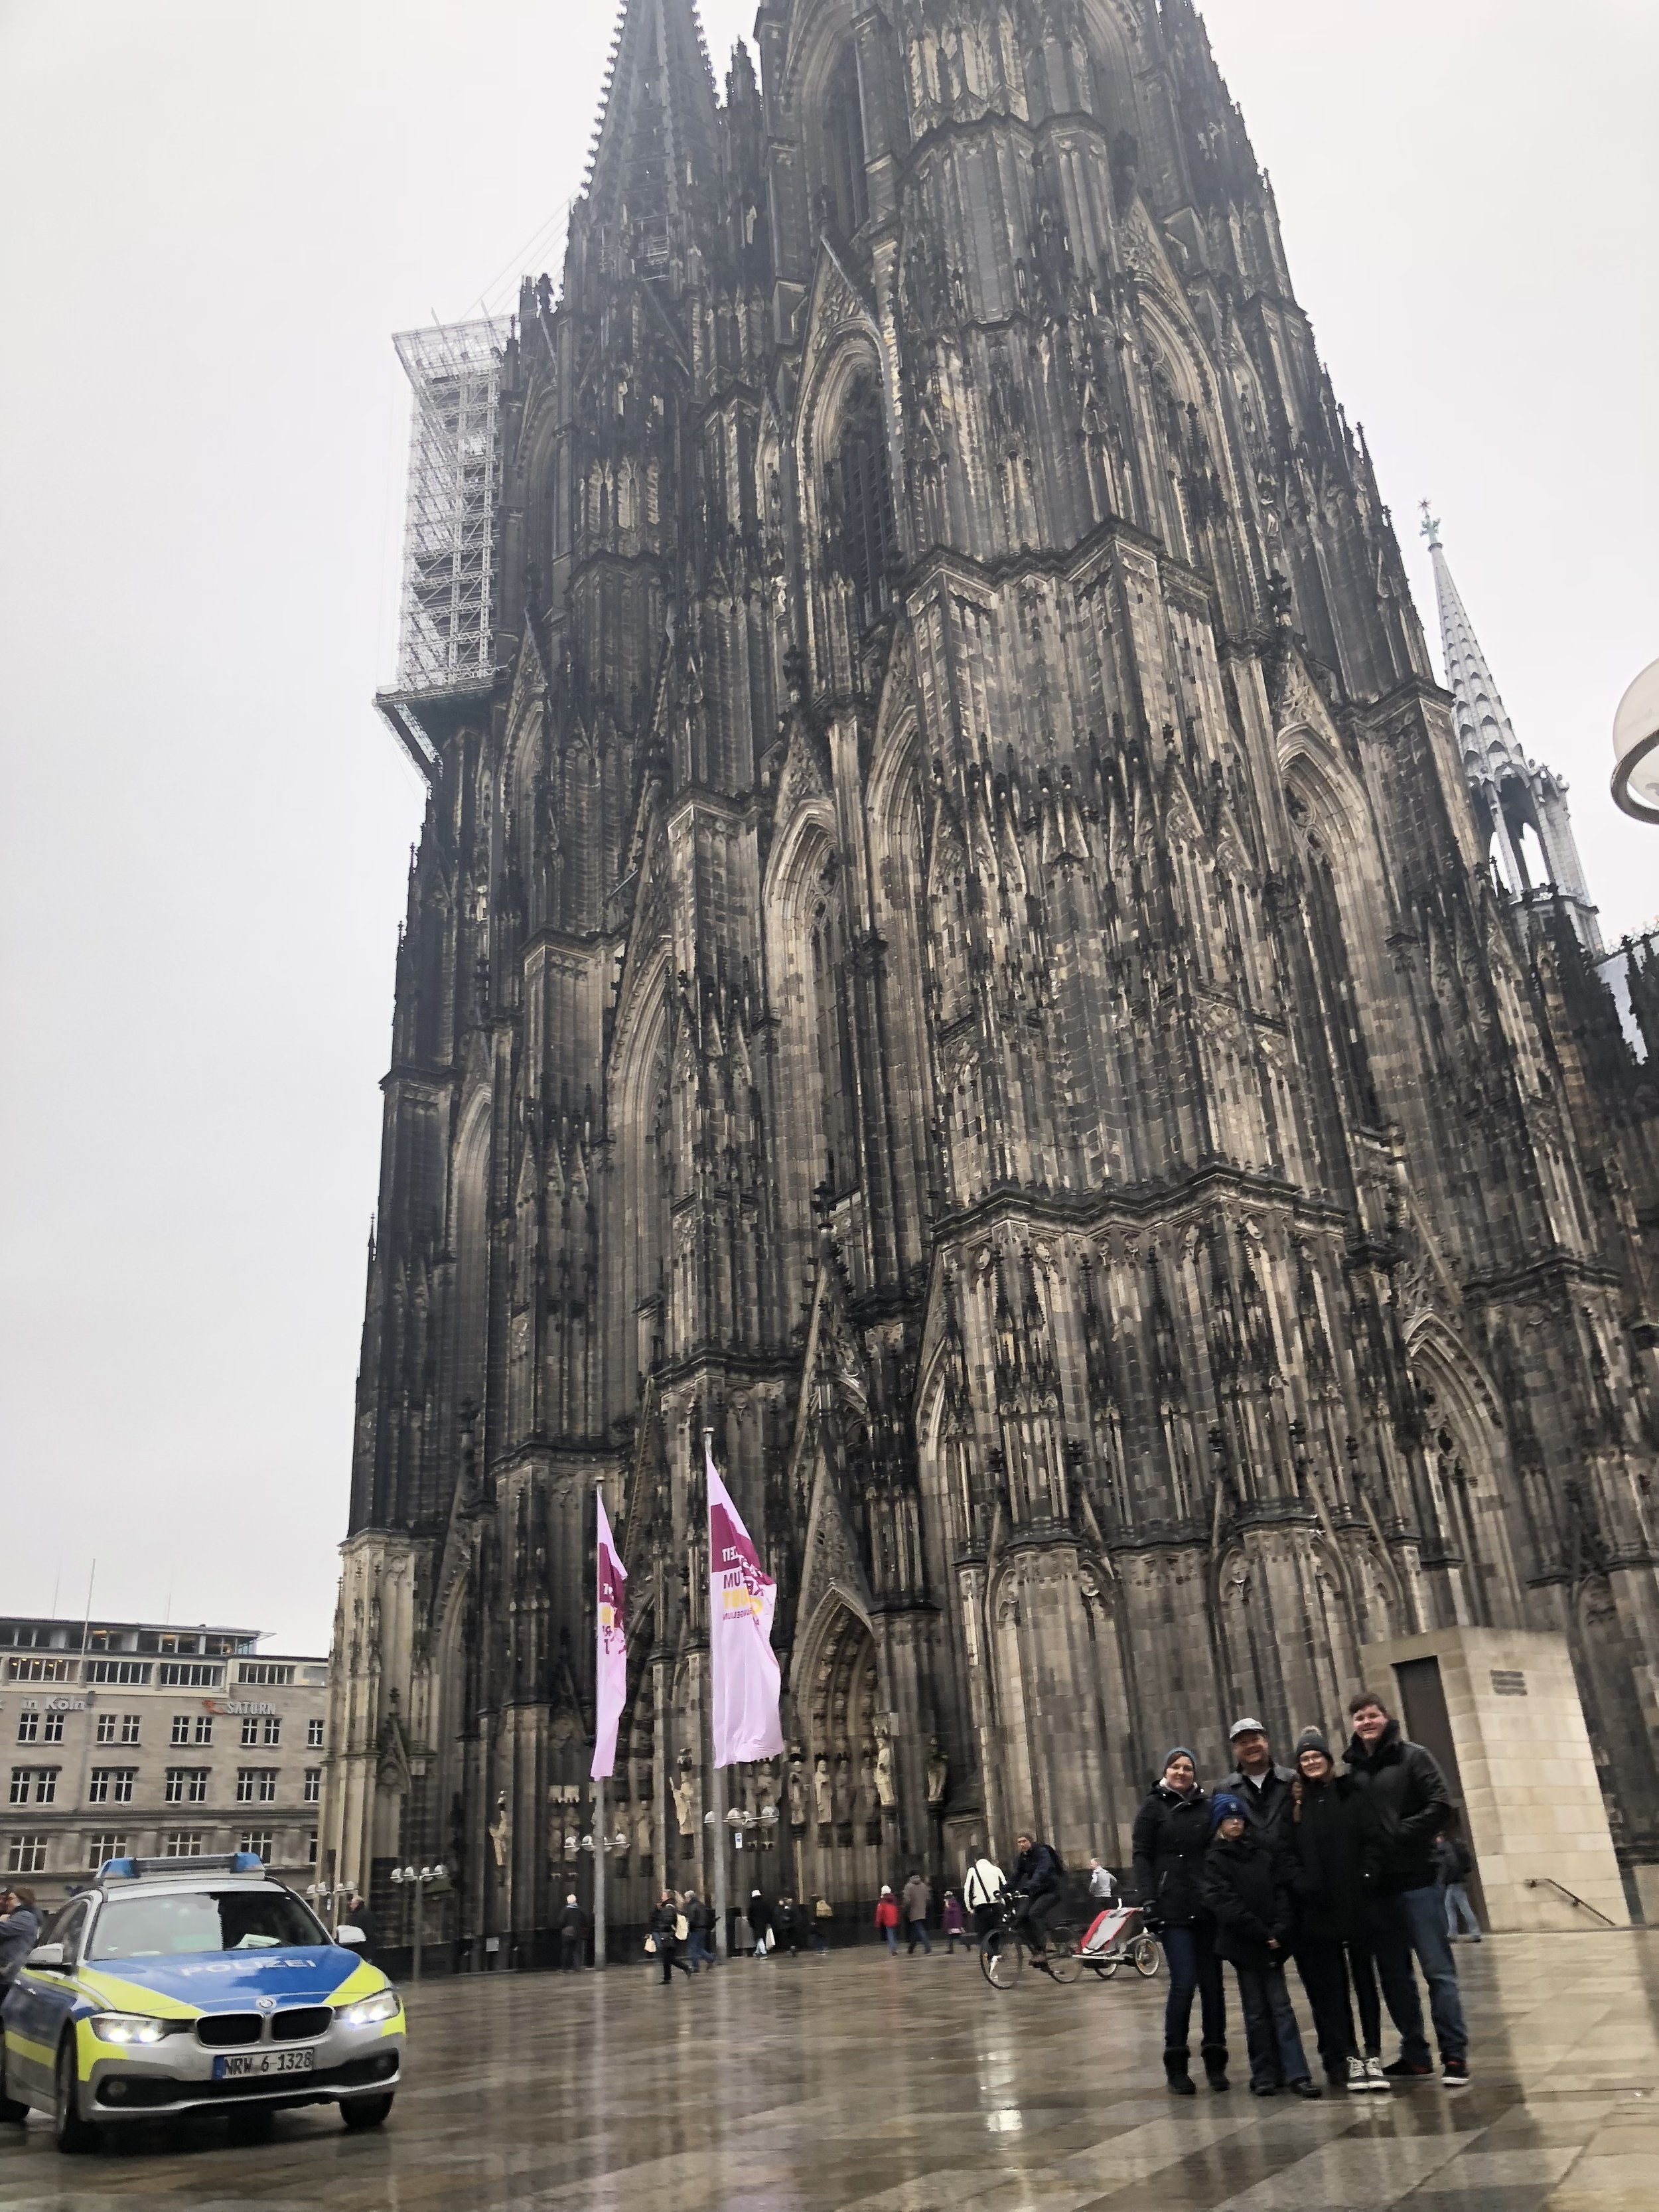 It's hard to capture the size of such a magnificent building. But we tried. We couldn't even get the top of the Cathedral into the frame.